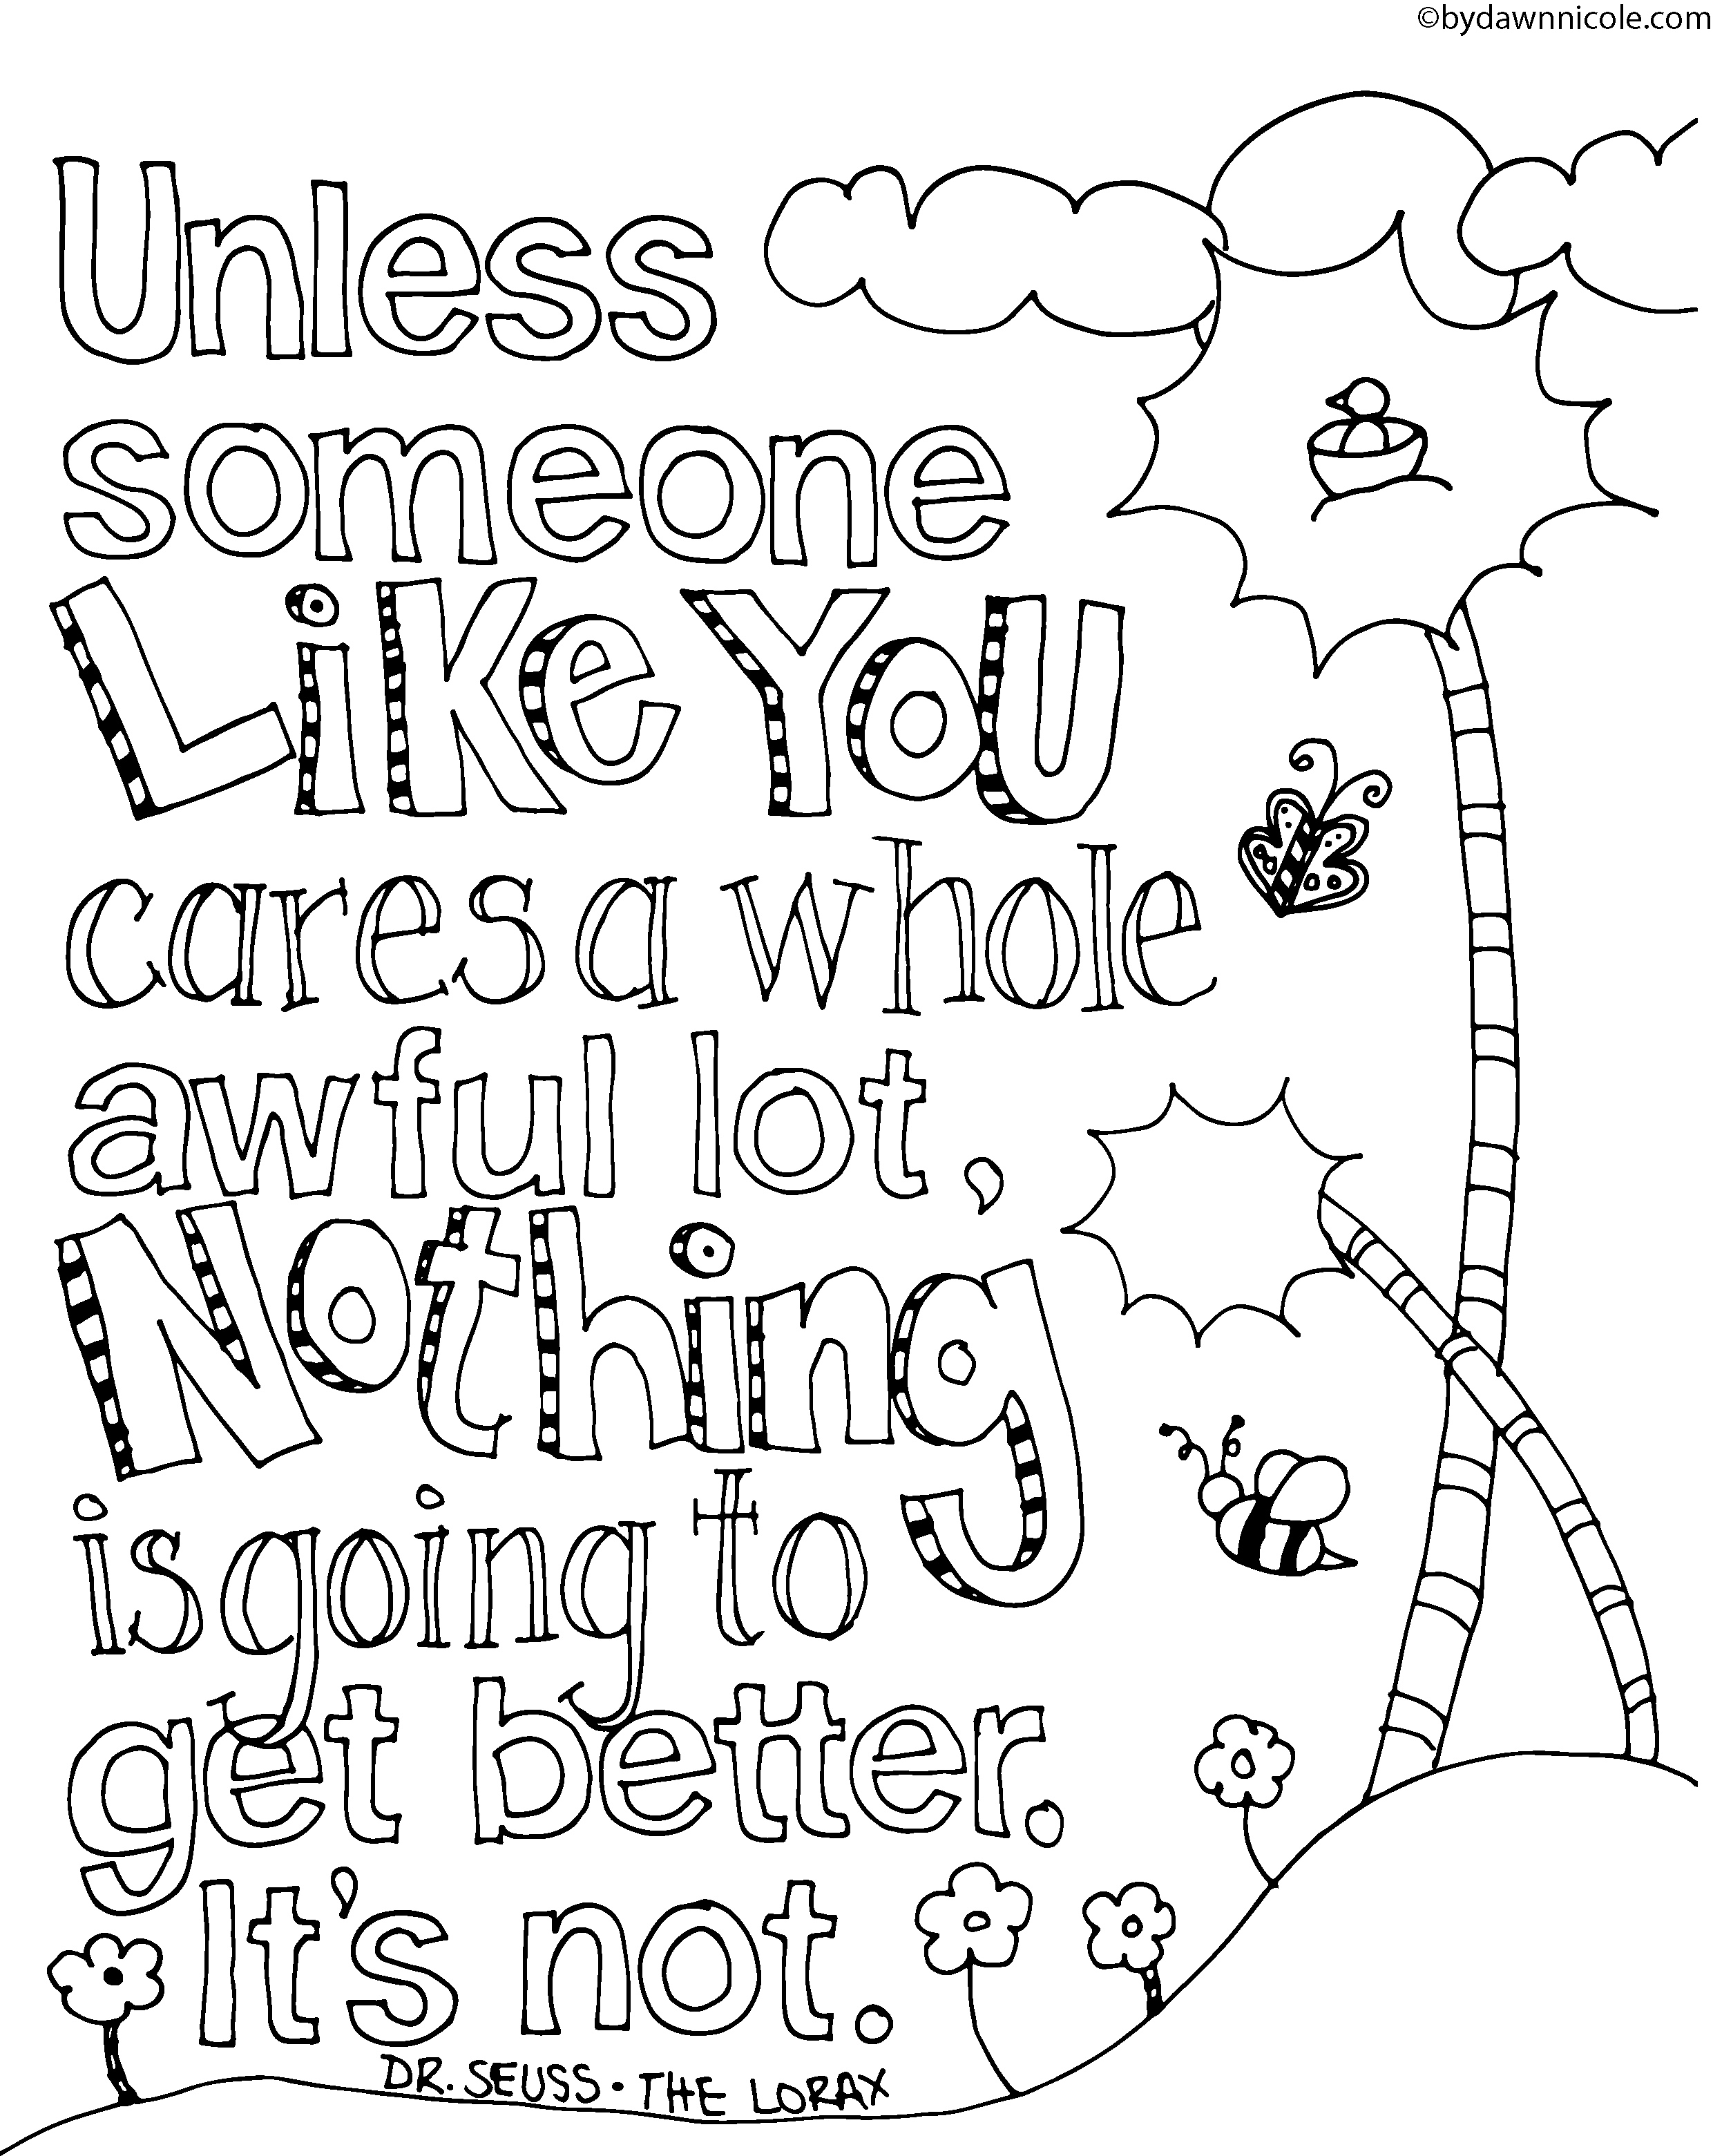 lorax coloring pages - valentines coloring pages coloringfit free printable valentines day coloring pages for adults valentines day coloring pictures for adults